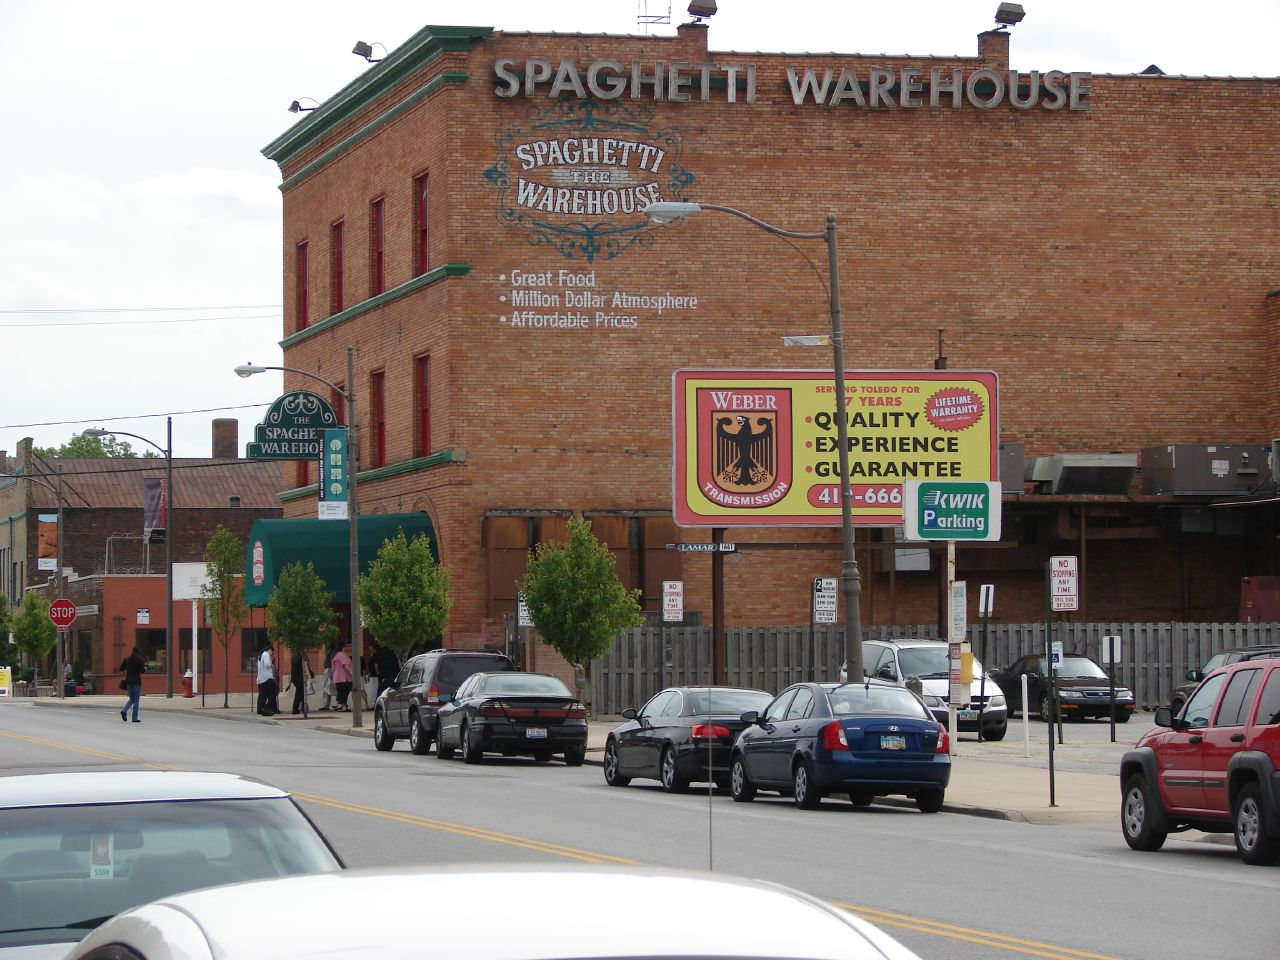 Best Historical Sites Of Texas No One Visits-The Former Spaghetti Warehouse